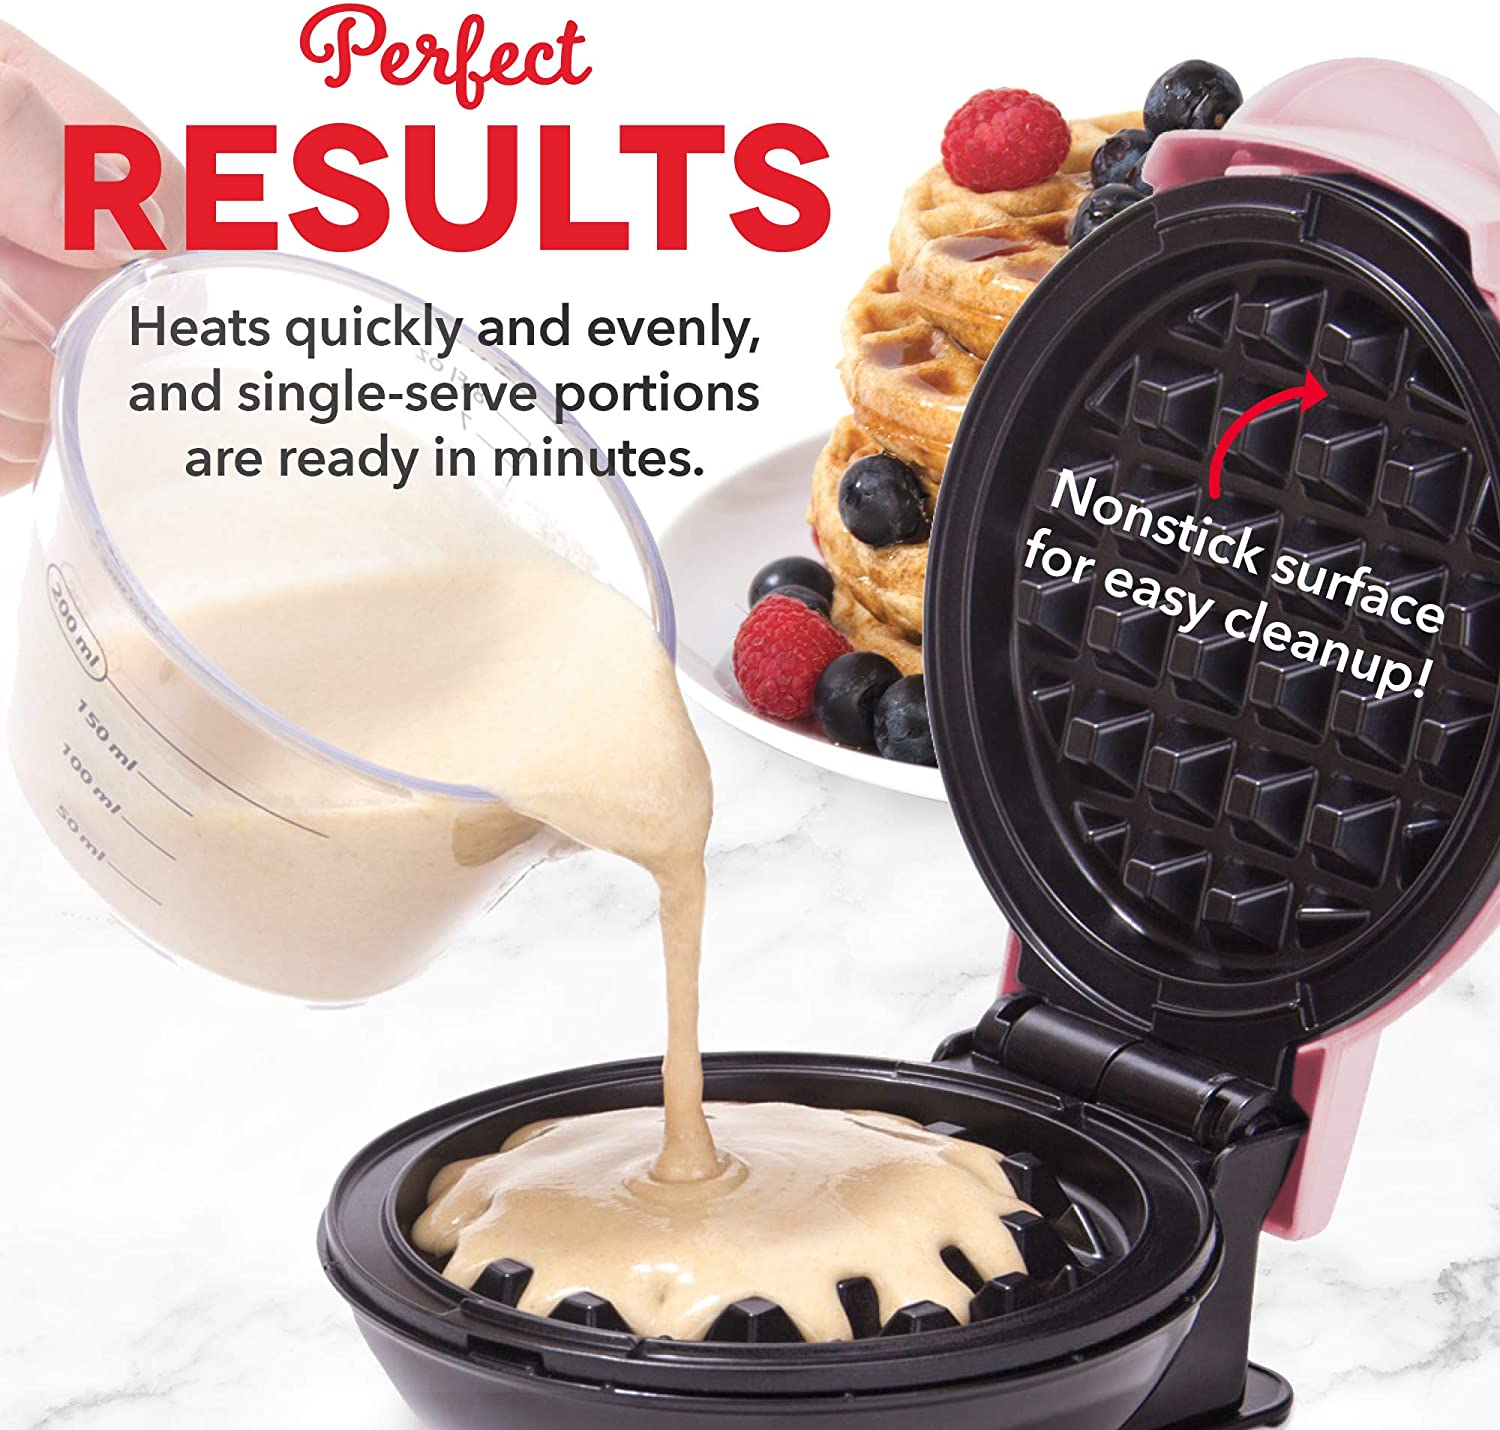 Paninis Aqua or Snacks Lunch Hash browns /& other on the go Breakfast Dash Mini Maker: The Mini Waffle Maker Machine for Individual Waffles